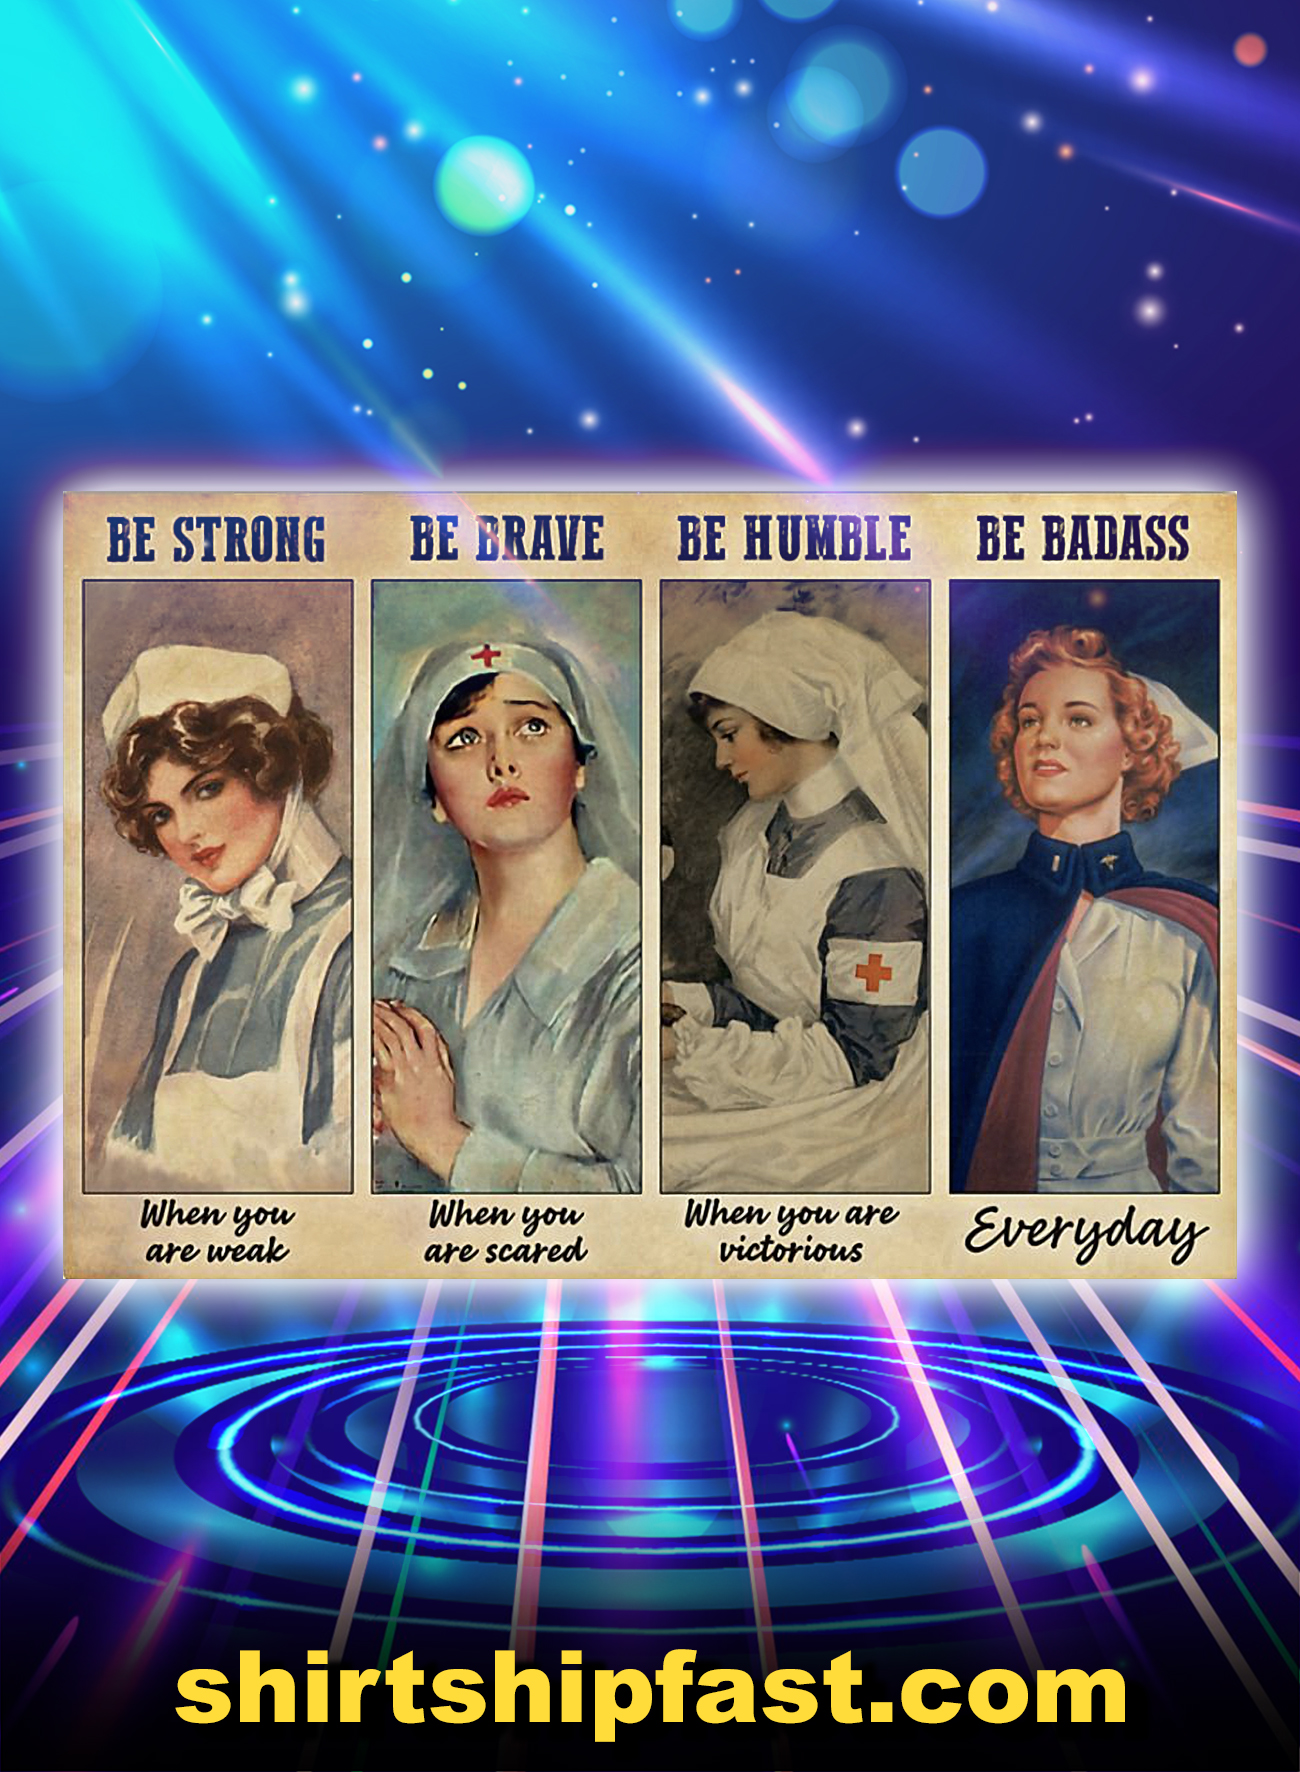 Nurse be strong be brave be humble be badass poster - A4